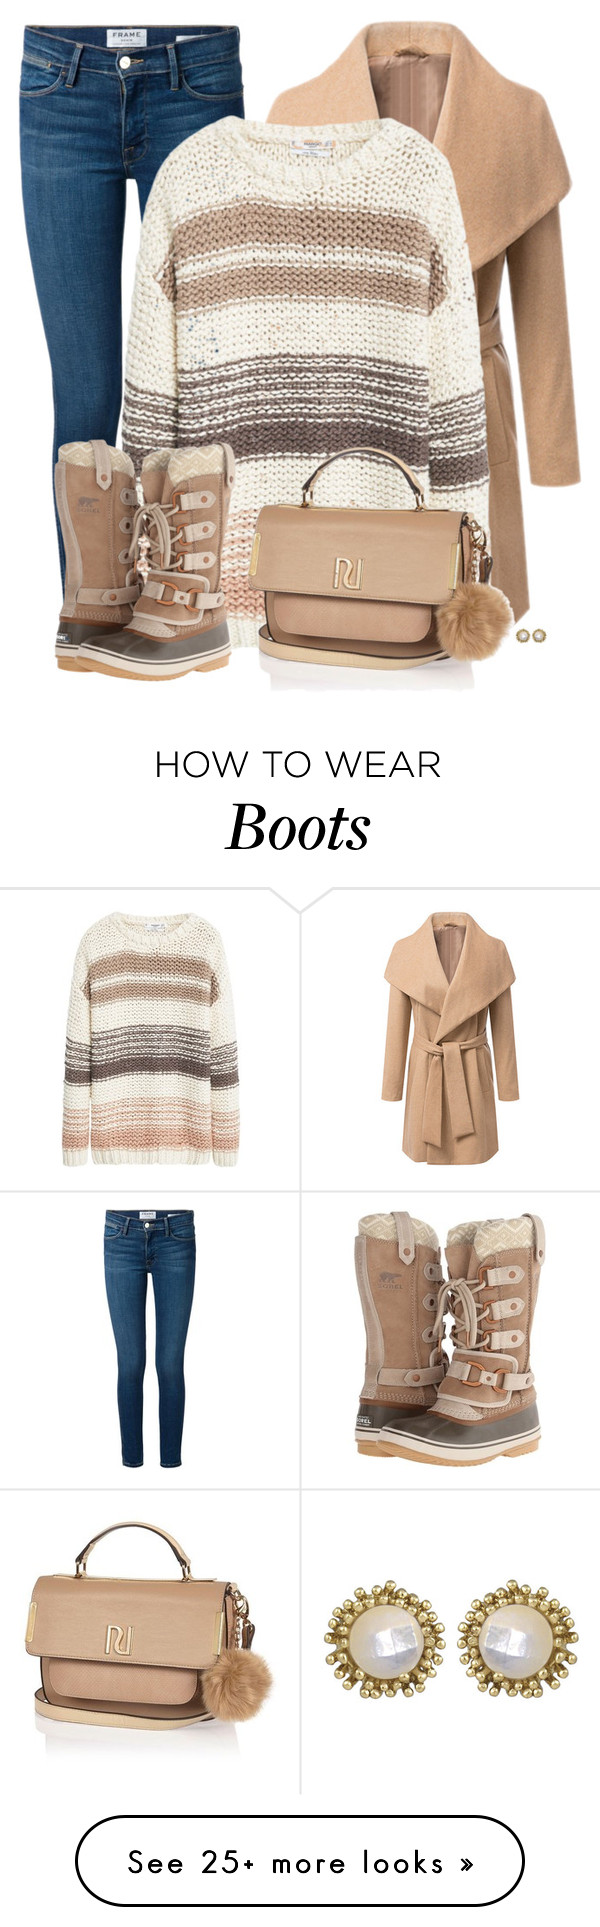 """Duck Boots for Winter"" by cnh92 on Polyvore featuring Frame Denim, MANGO, SOREL, River Island and Kendra Scott"